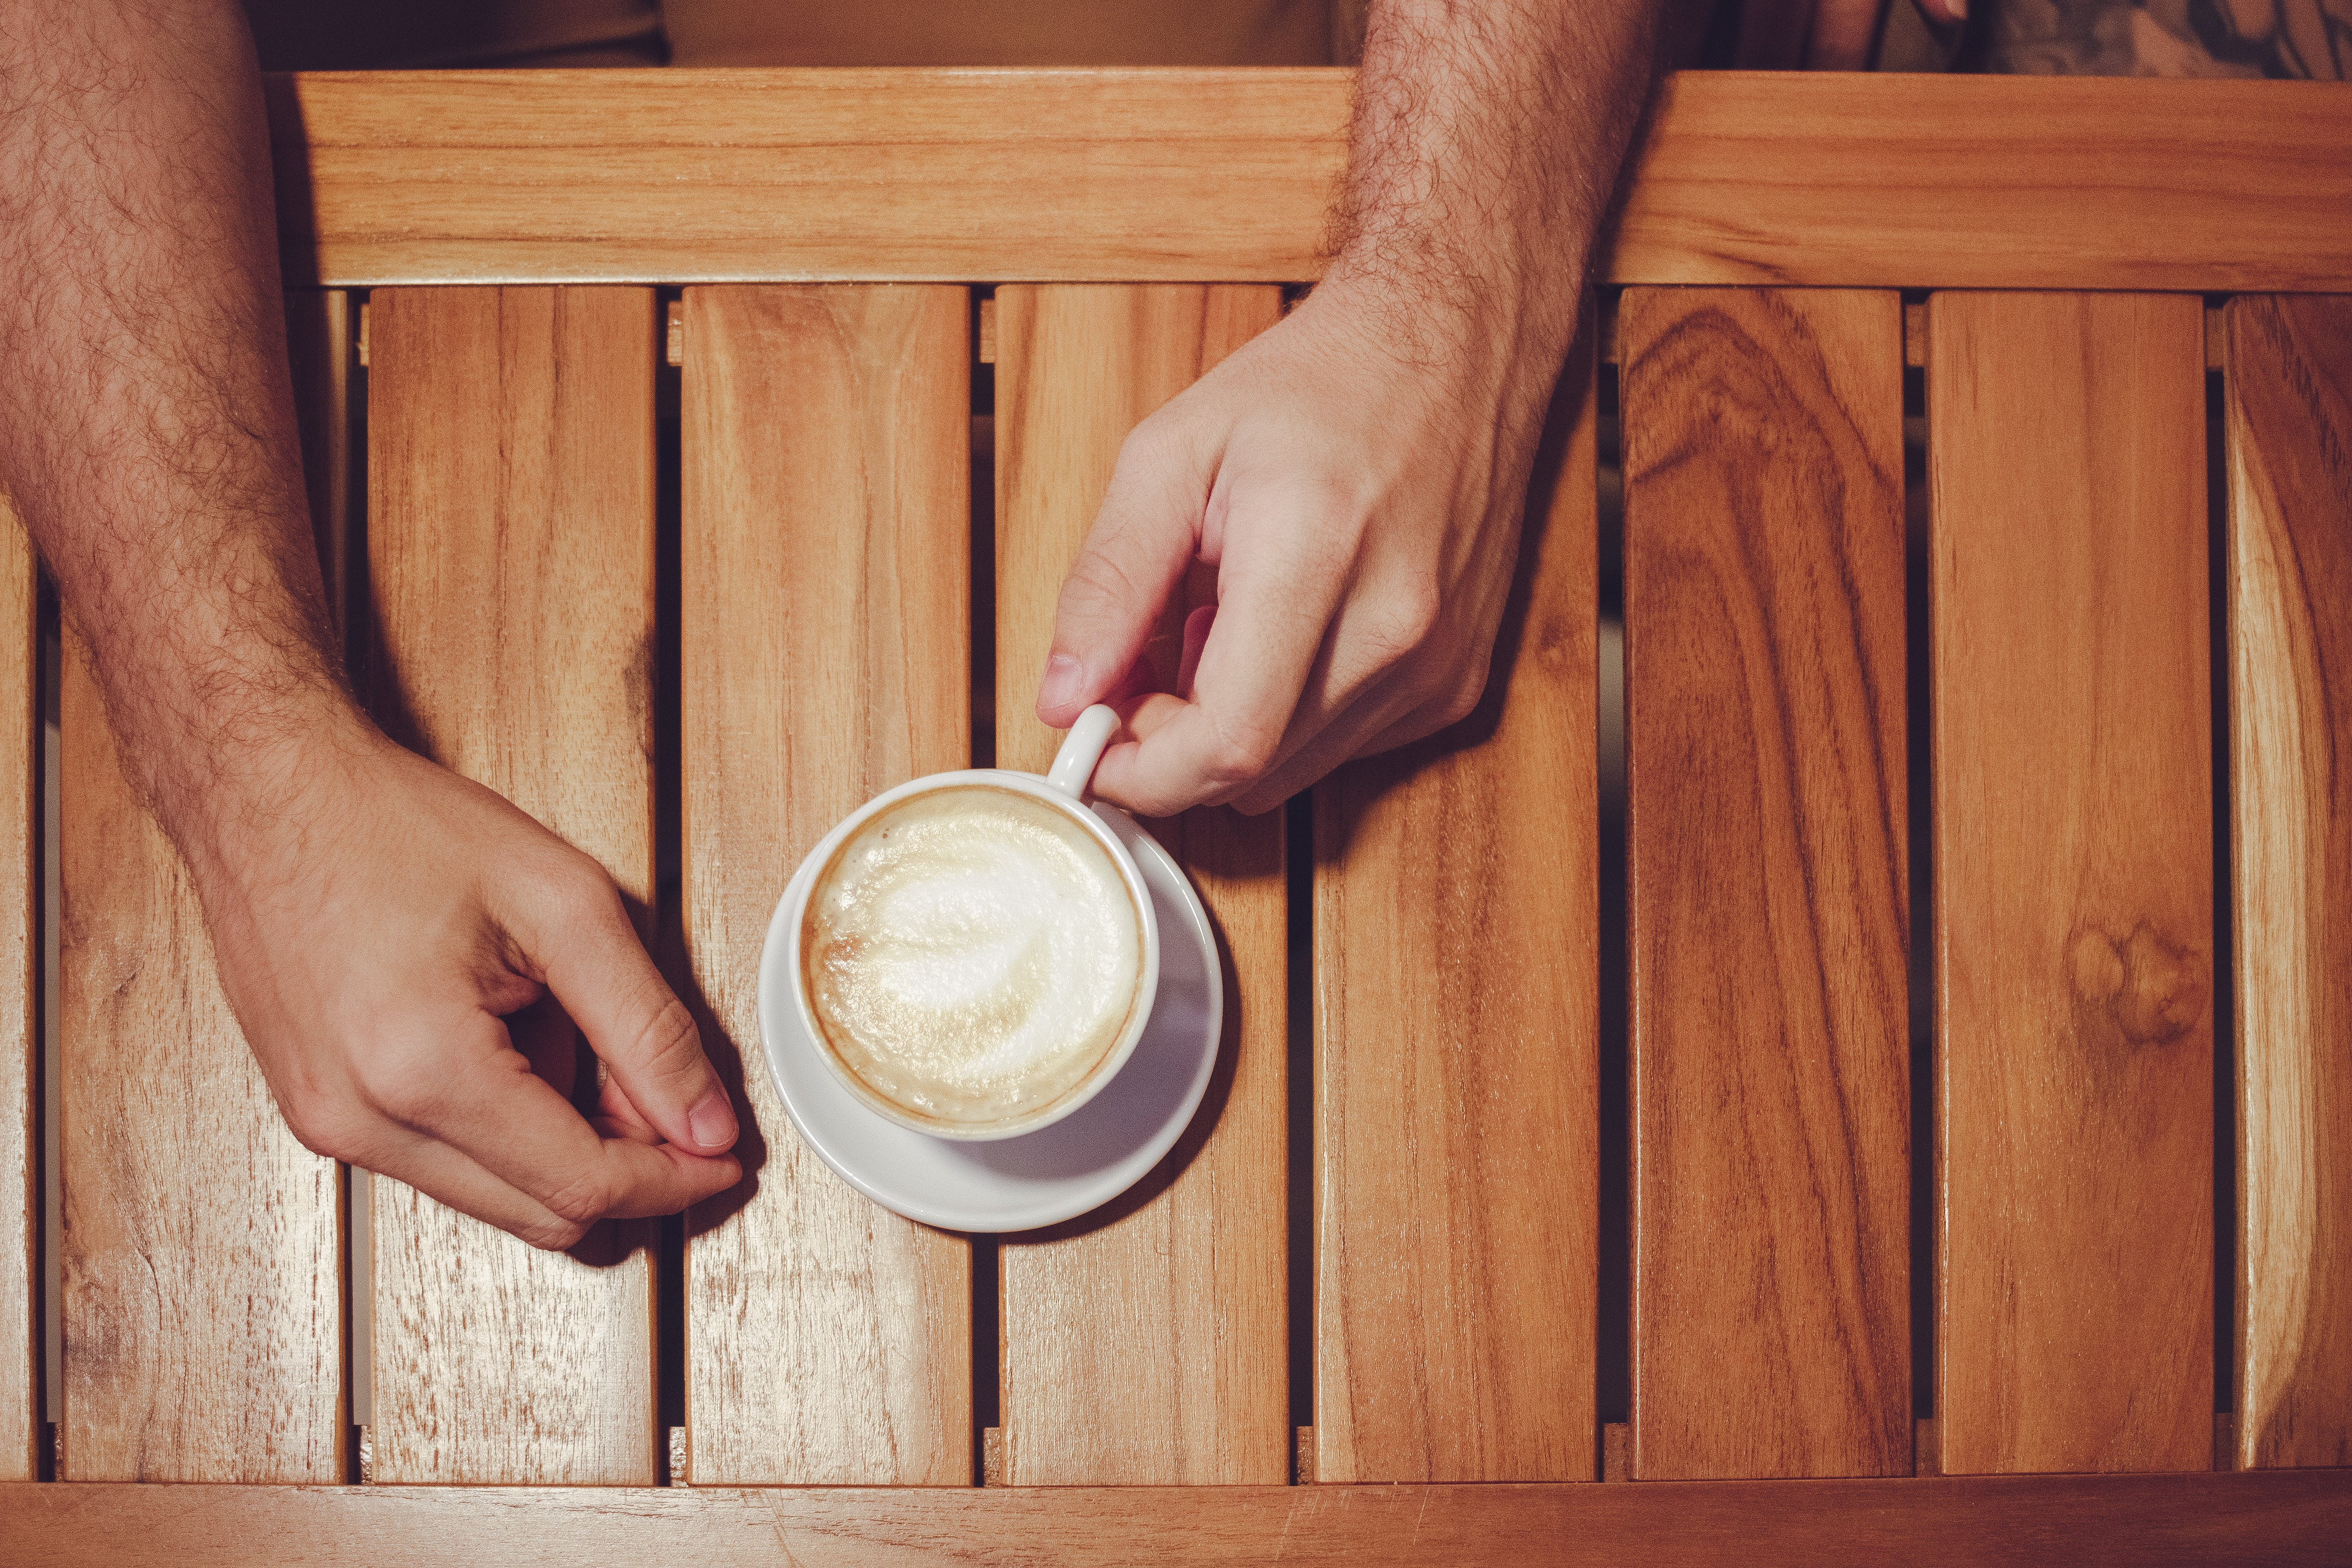 Person Holding White Ceramic Cup With Cappuccino on Brown Wooden Table